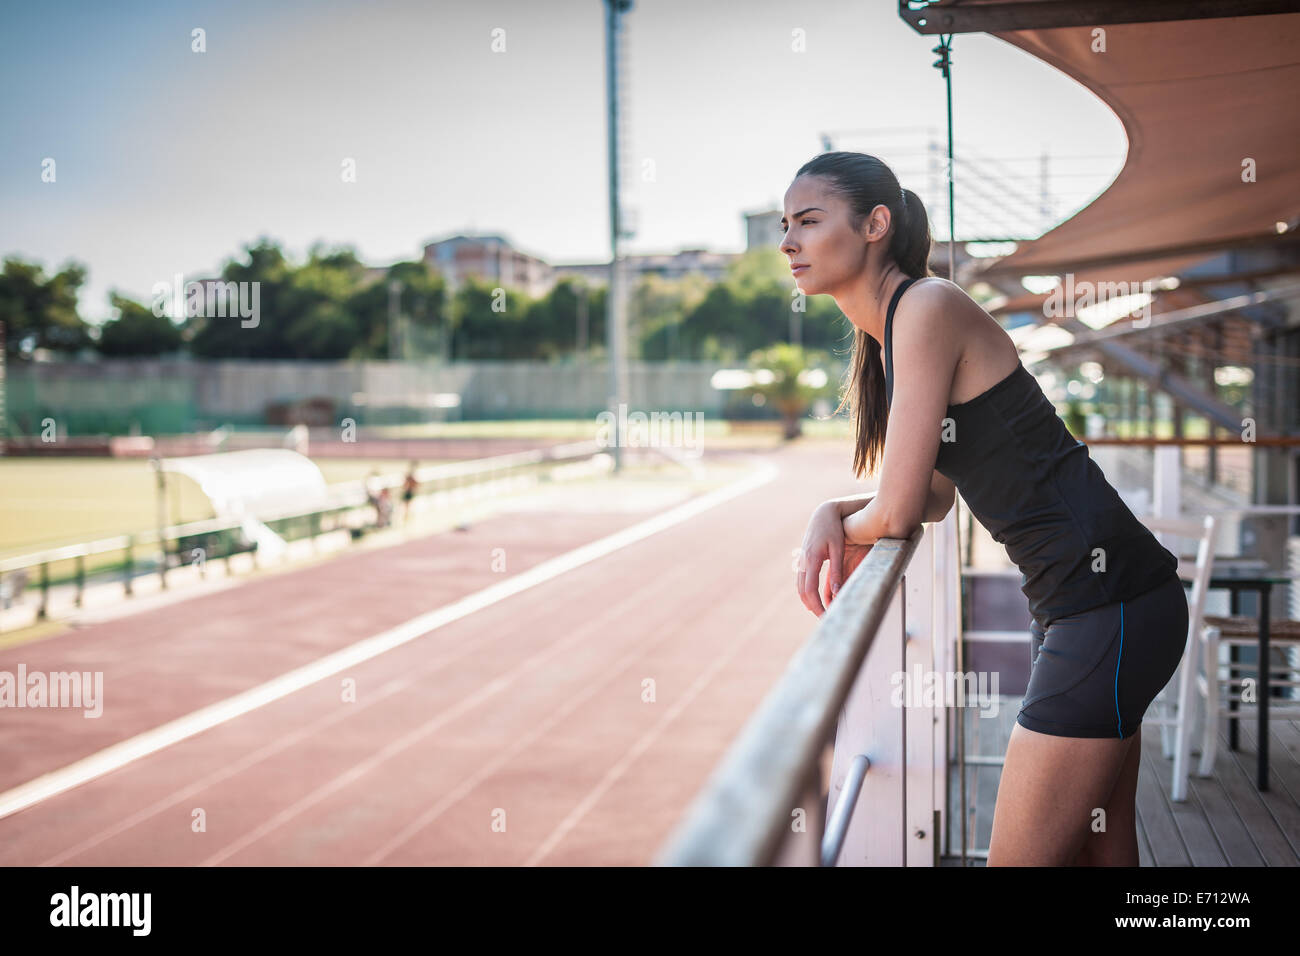 Young woman leaning on railing by race track - Stock Image